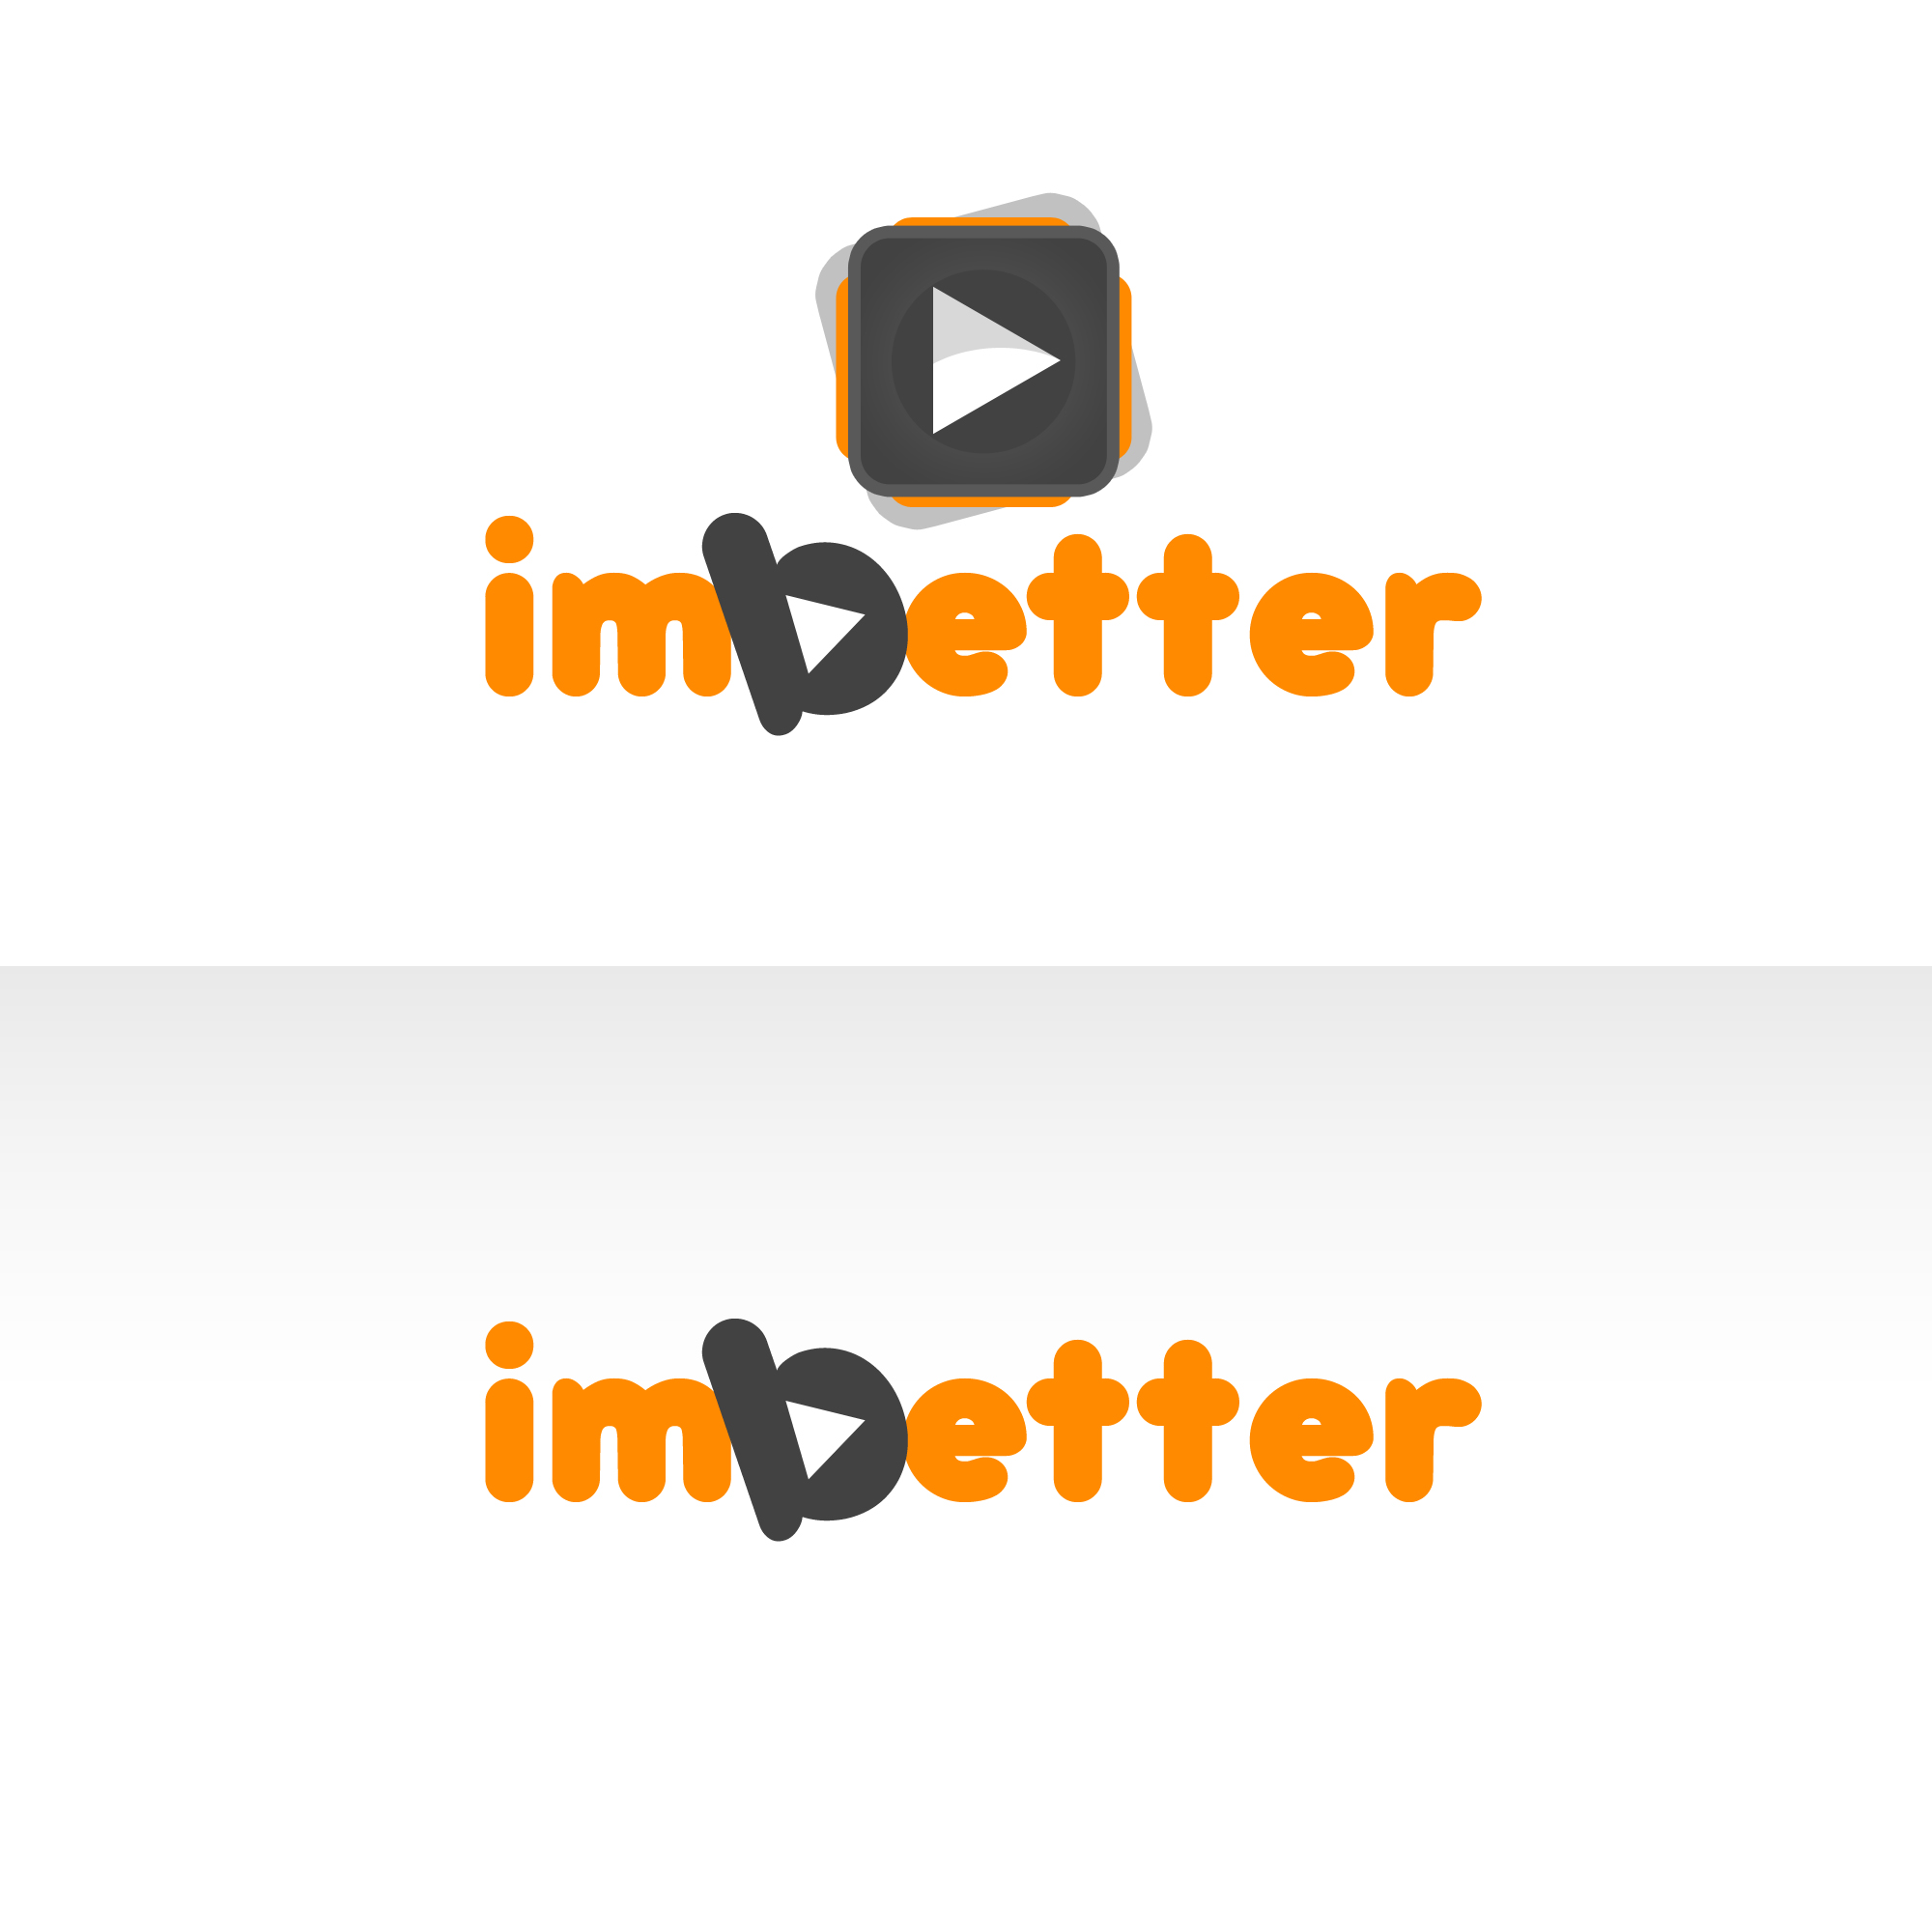 Logo Design by Kenneth Joel - Entry No. 43 in the Logo Design Contest Imaginative Logo Design for imbetter.